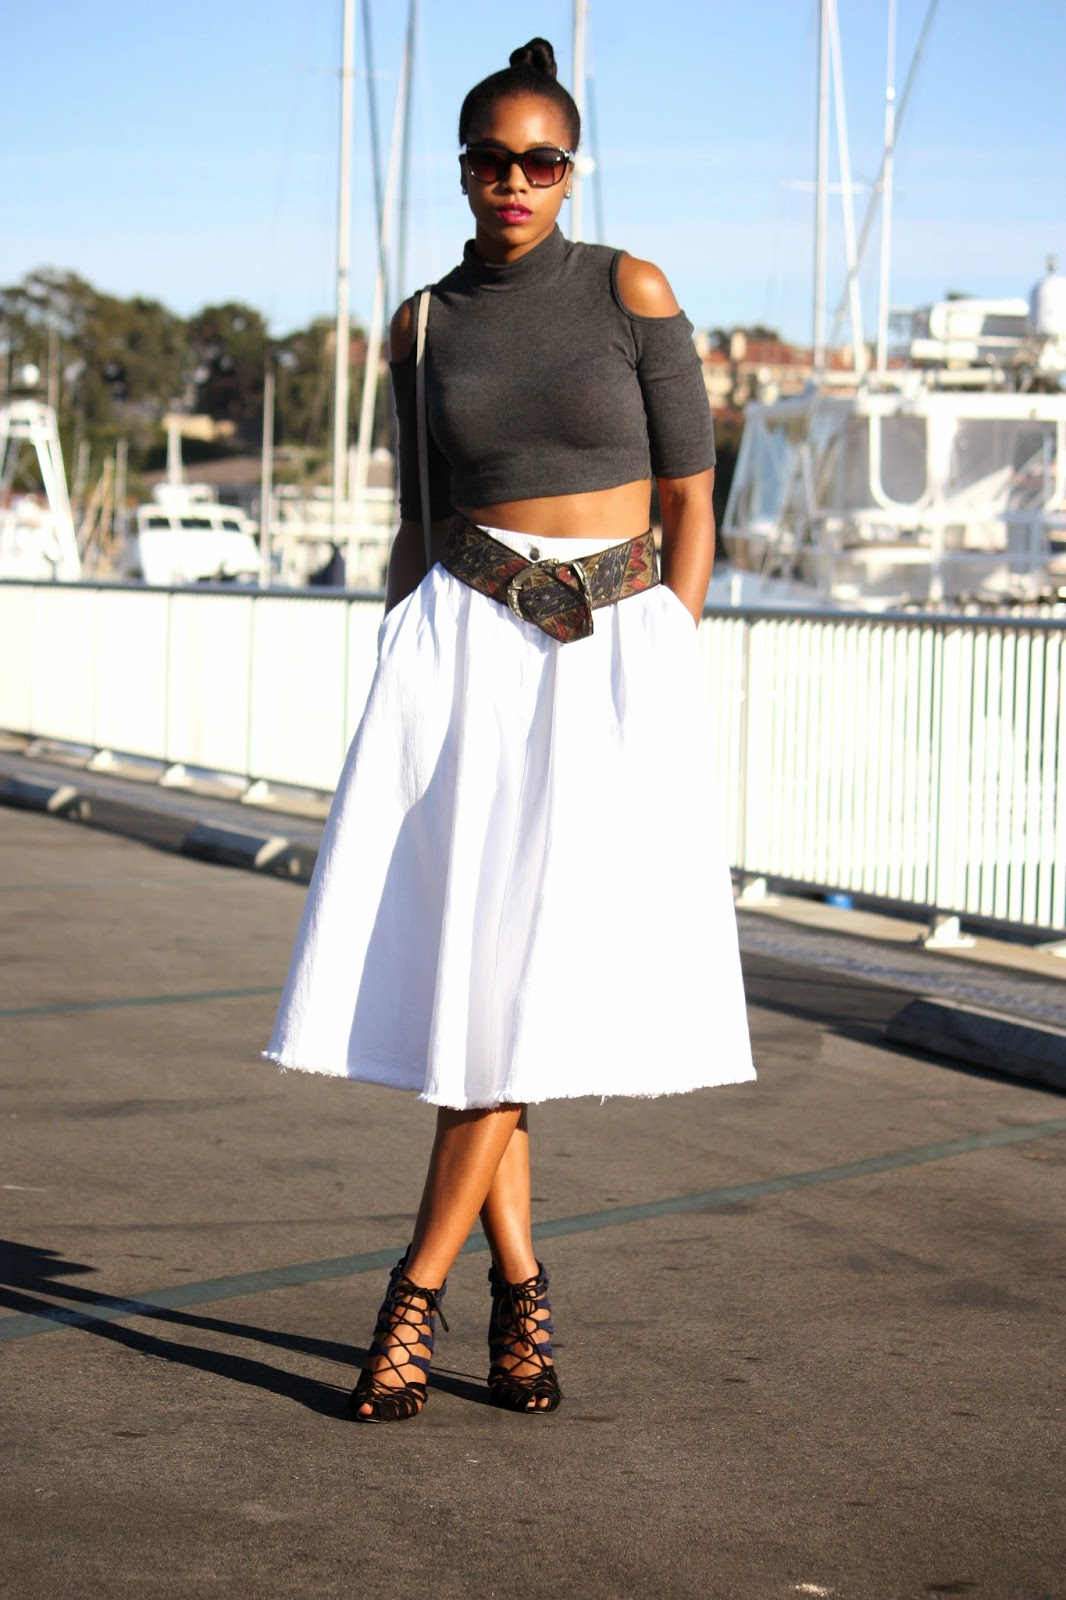 Wearing: Janette Fashion crop top Thrifted embroidered belt H&M denim skirt Zara tie up heels